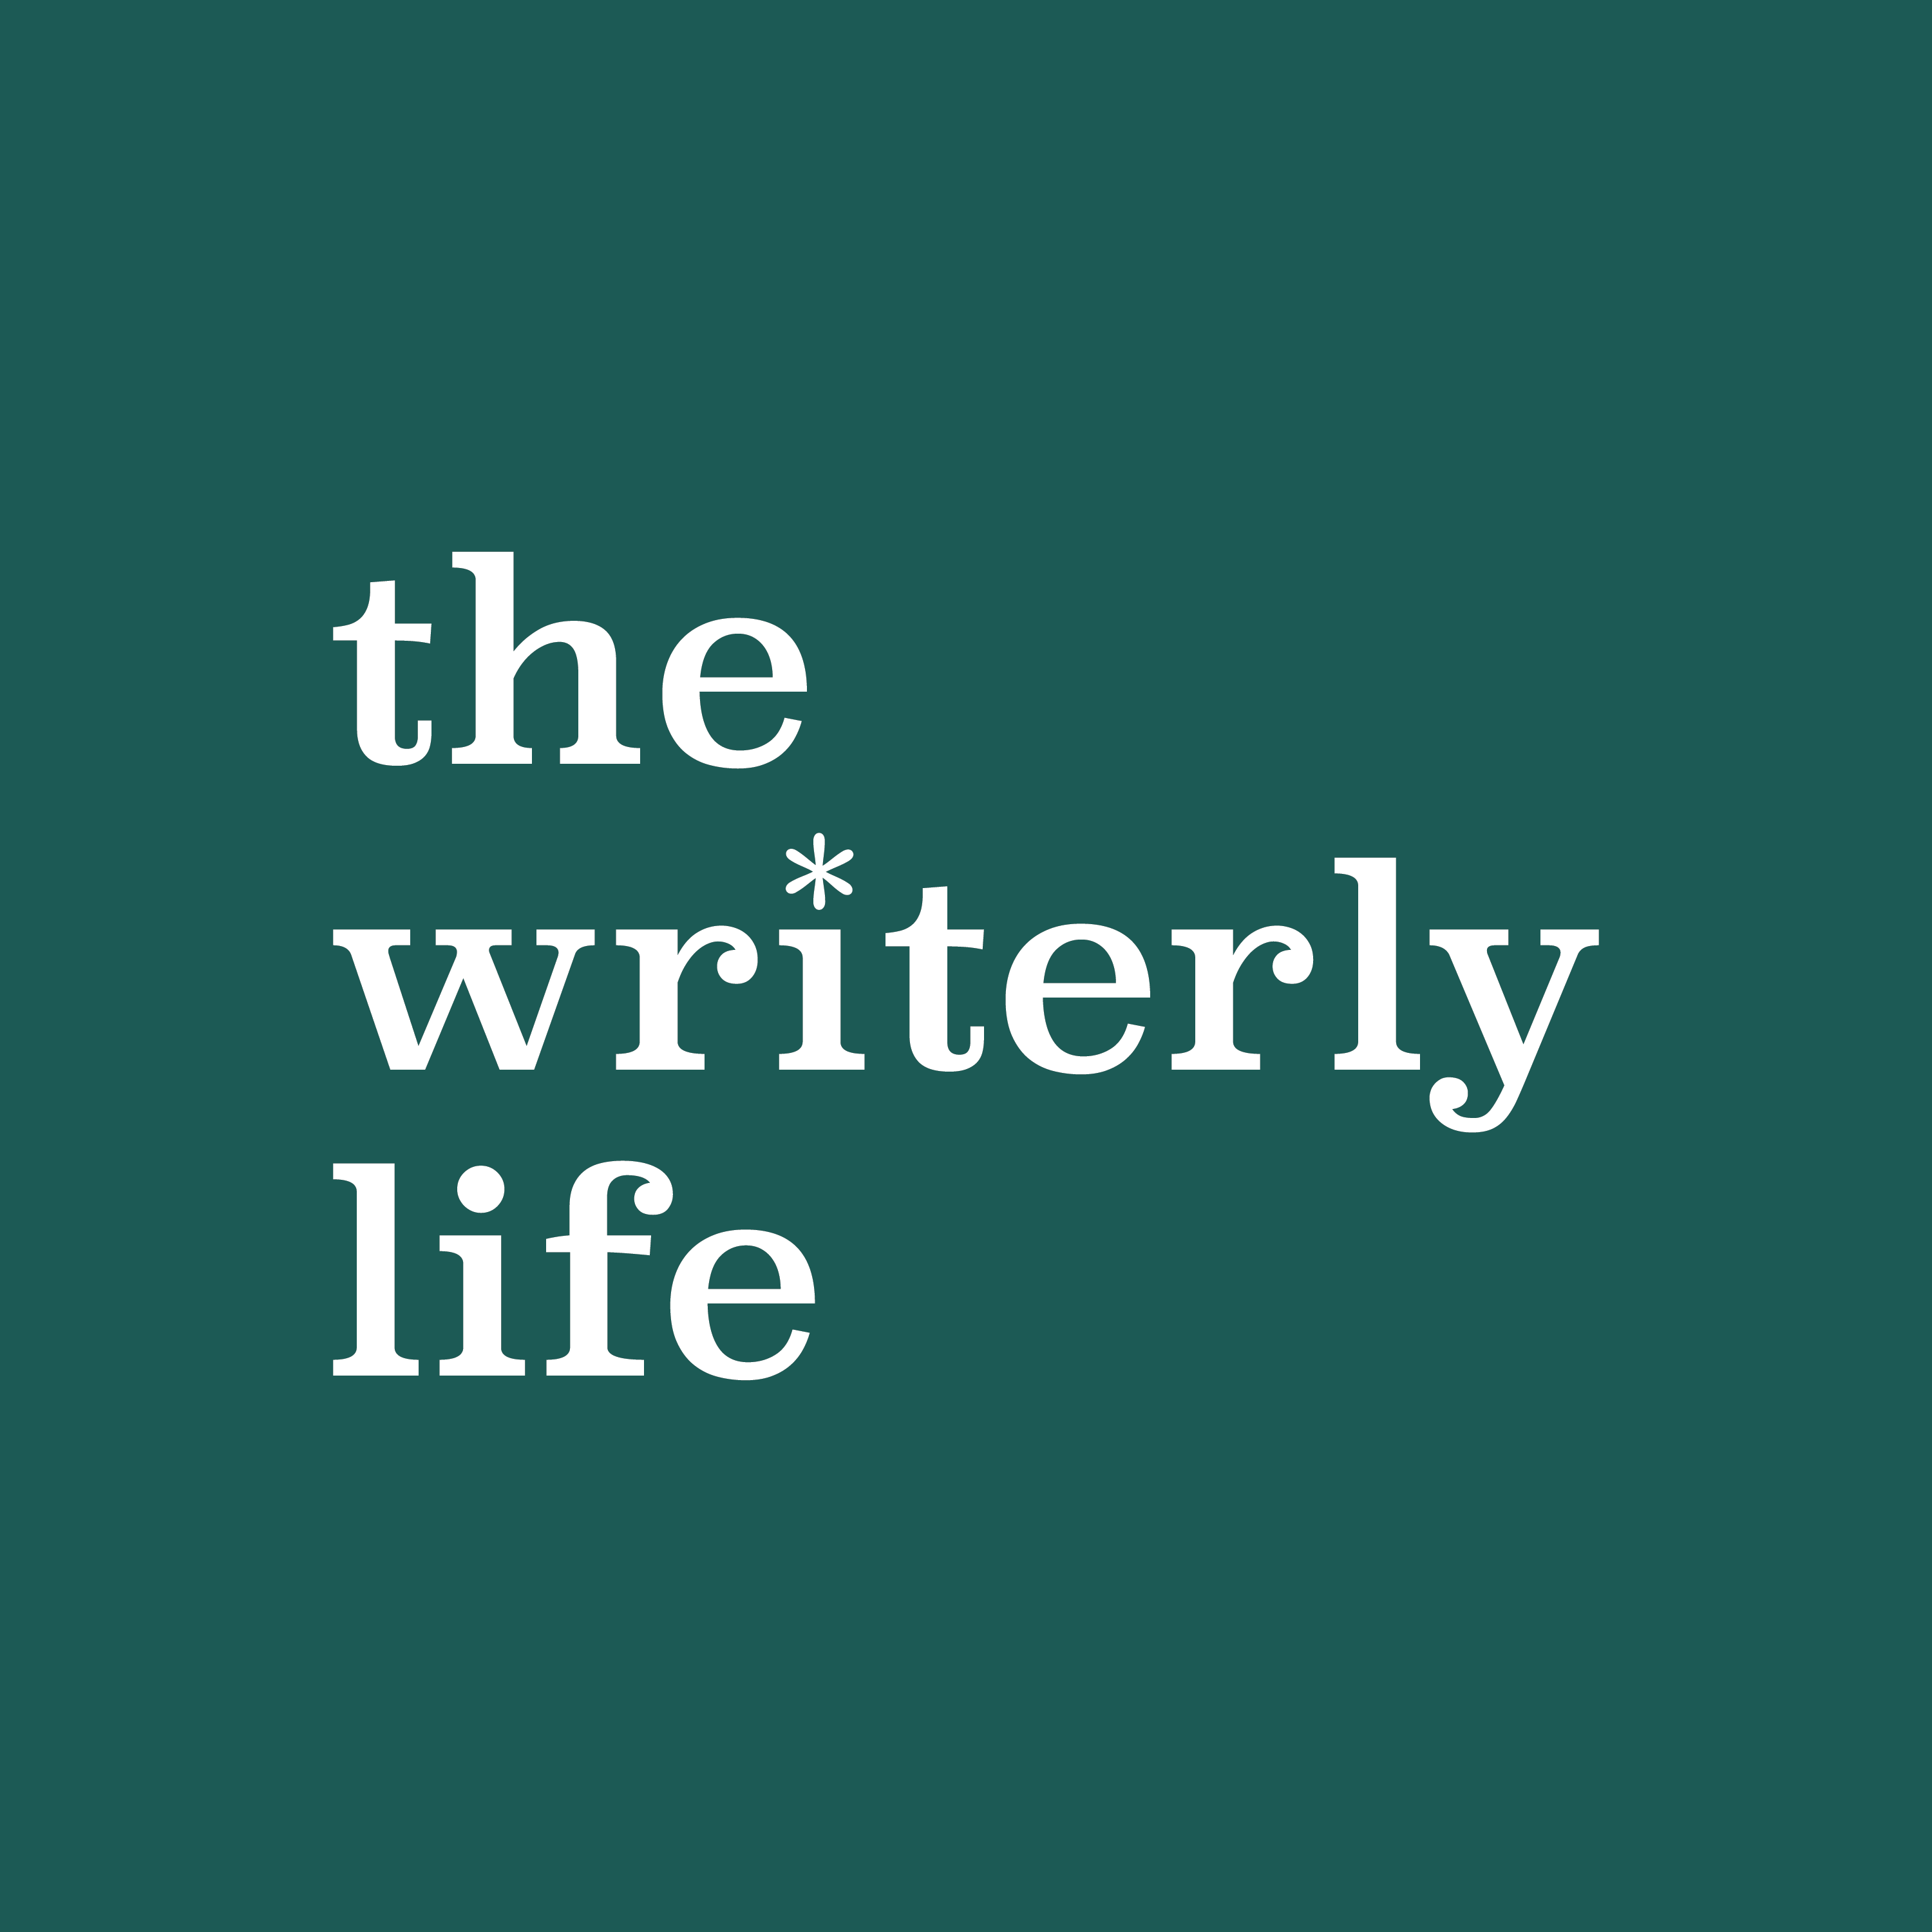 Welcome to The Writerly Life - When you're ready to make progress in your writing life, we're here to help!